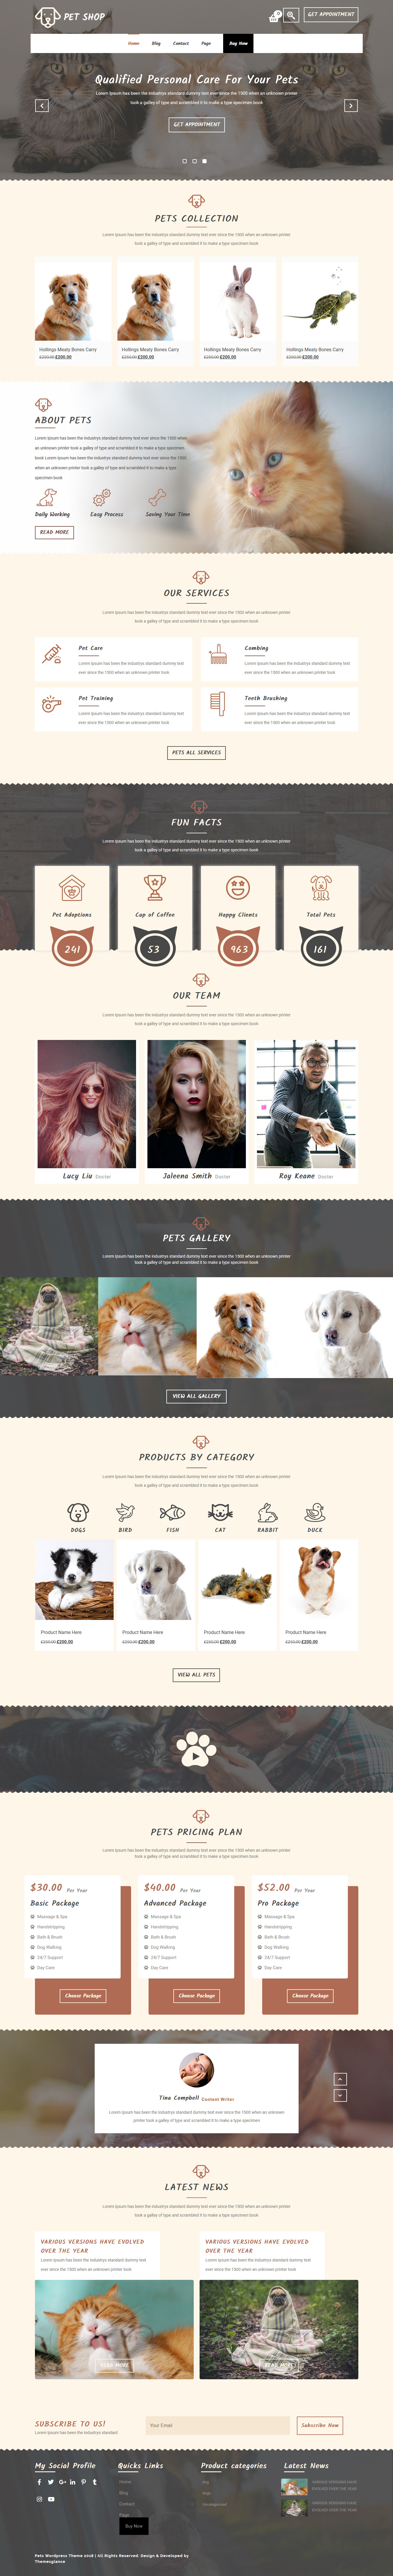 Pet Animal Store- Best Free Animal and Pet WordPress Theme